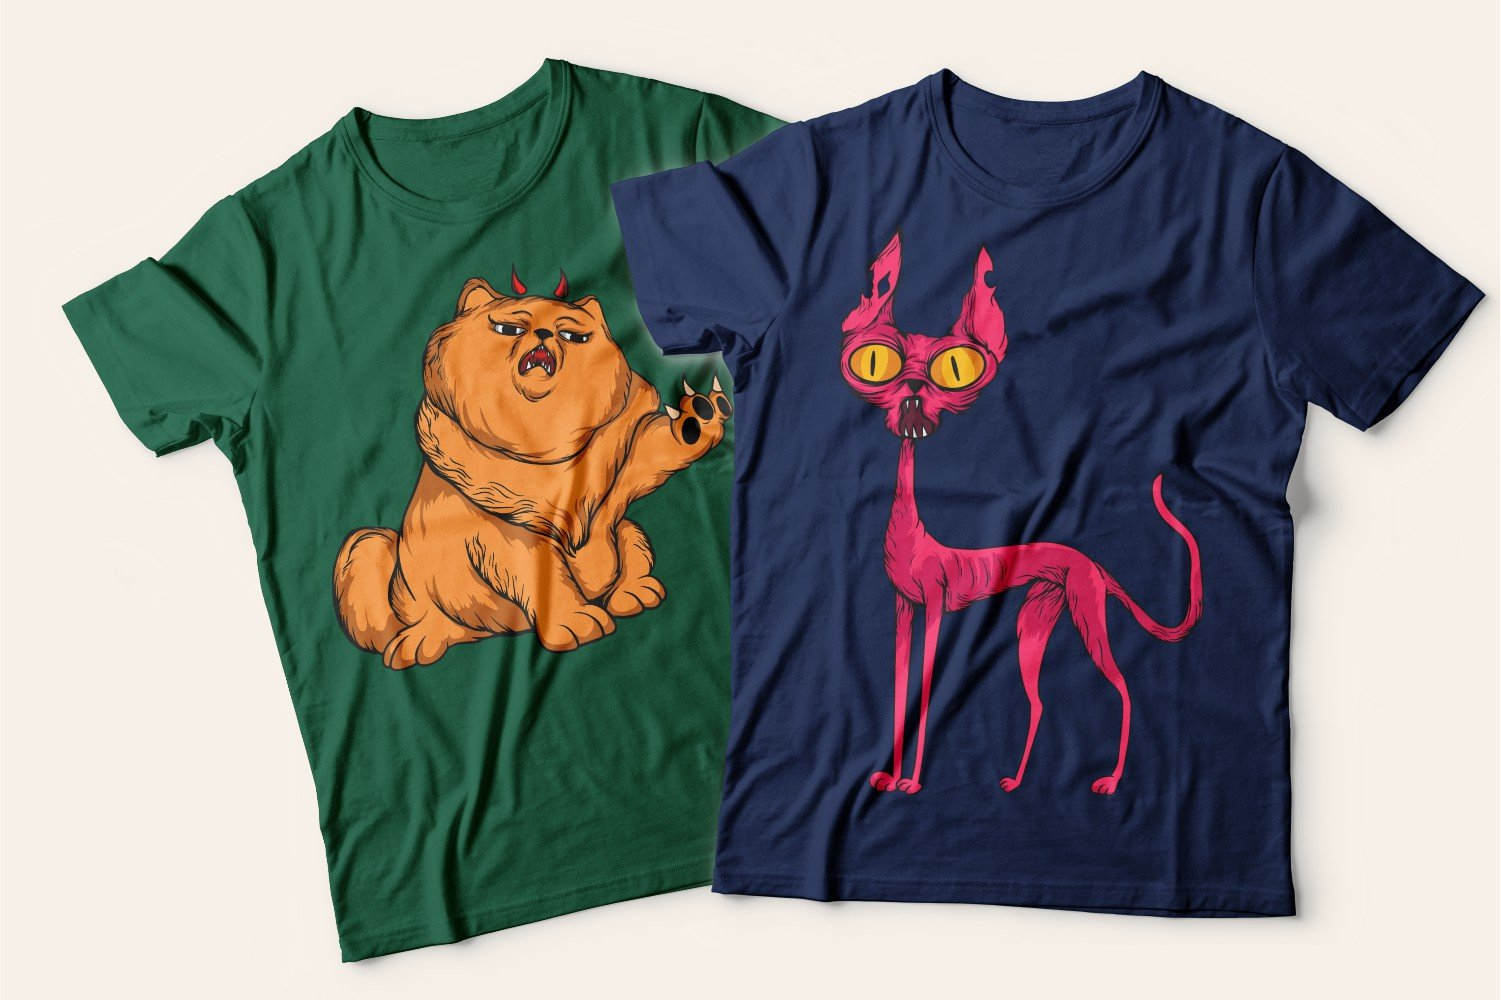 Two T-shirts with cats: one green with a gorgeous ginger cat, the other blue with a frightened red cat.